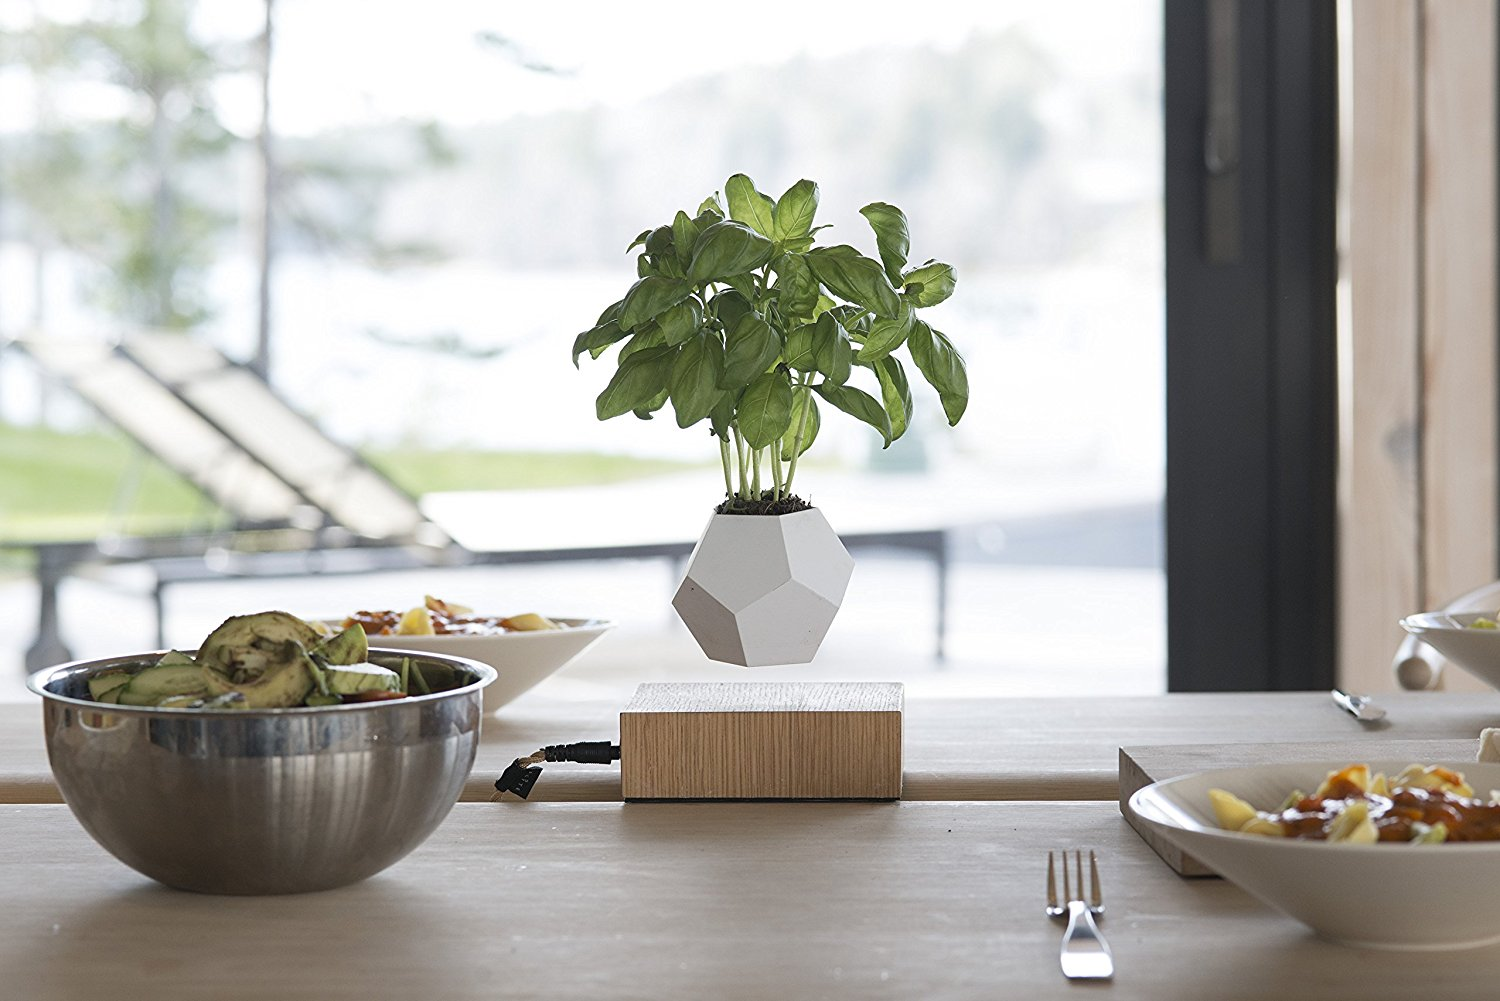 Lyfe Levitating Plant Pot - Add some minimal futuristic plant pot to your office desk with the Lyfe Levitating Plant Pot. No more soil required, the rotating microclimate and gravity-defying naturally nurtures the plant. The pot rotates slowly in a circle due to the use of the maglev technology. With the magnetic field feature, it enhances and accelerates the growth of the plant's metabolism. NASA studies say that by placing a plant in your office, it increases air quality, removes toxins and reduces stress level.